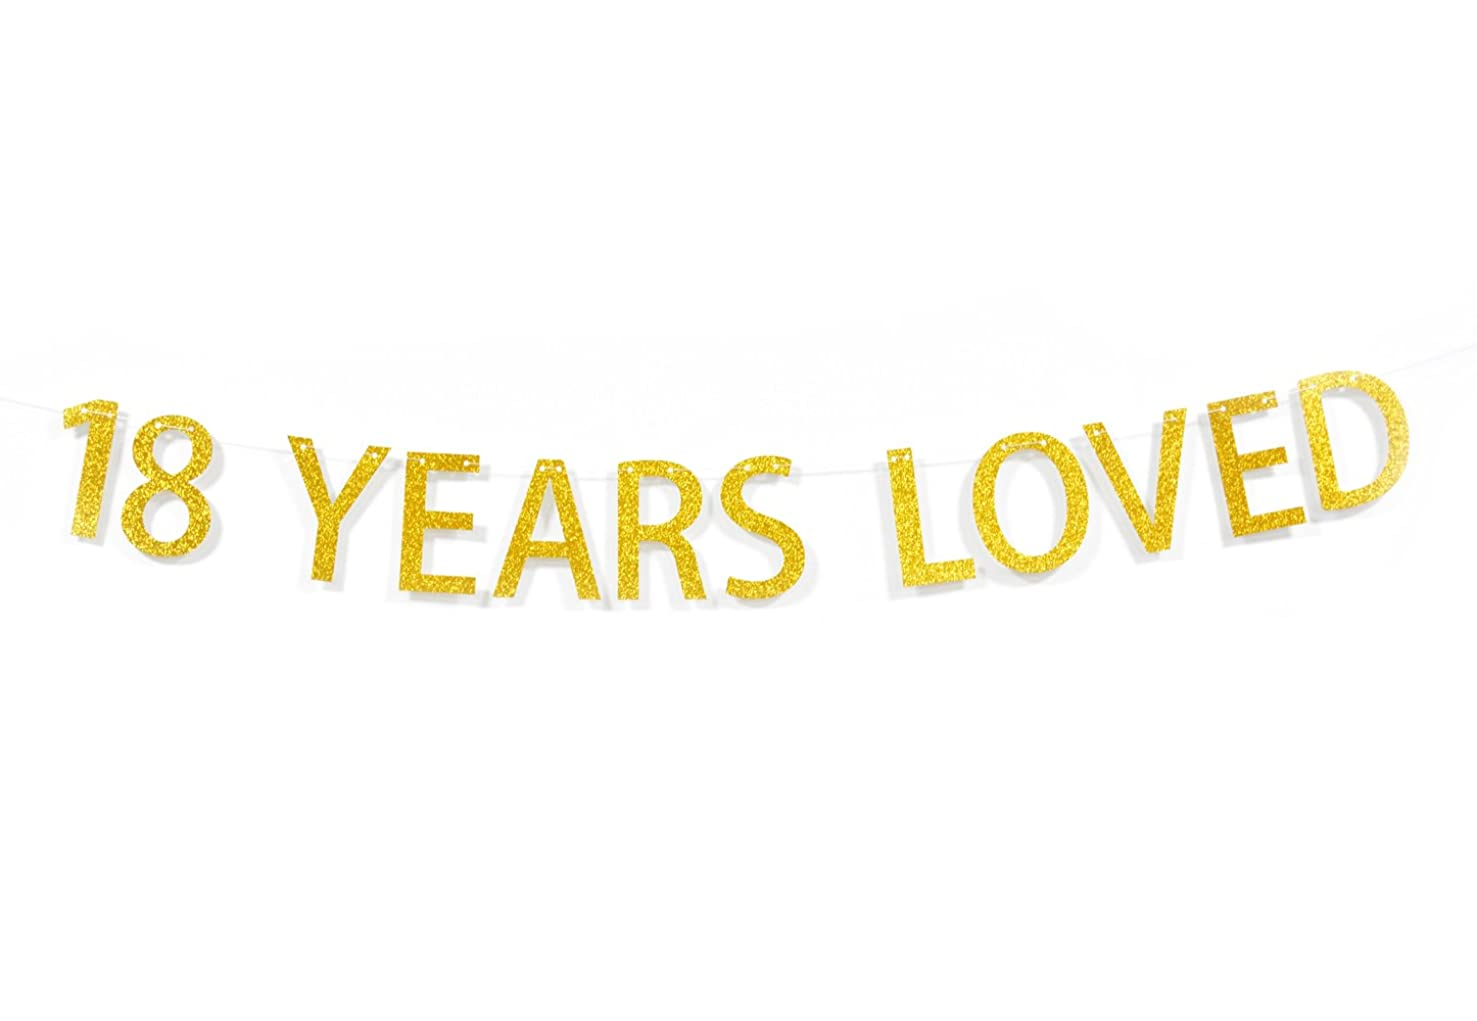 Qttier? 18 Years Loved Gold Glitter Banner for 18th Birthday Anniversary Party Decoration